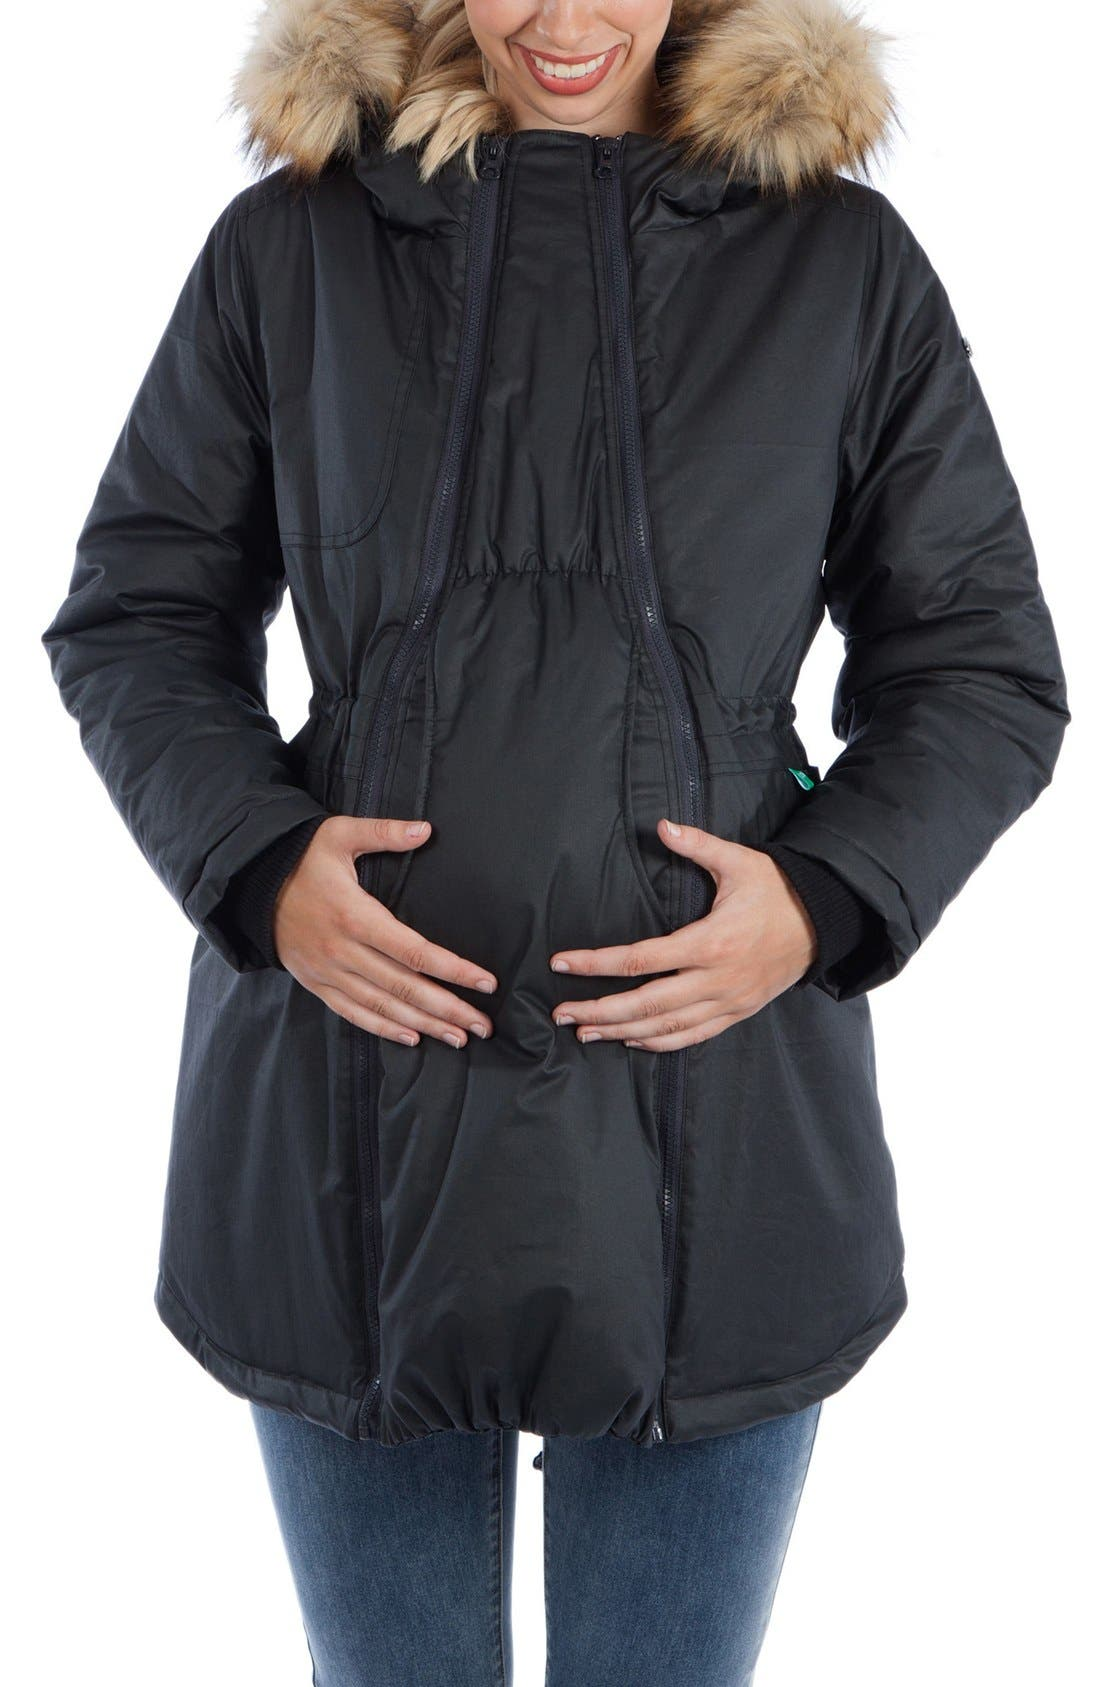 Alternate Image 1 Selected - Modern Eternity Sofia Waxed Shell Maternity Jacket with Faux Fur Trim